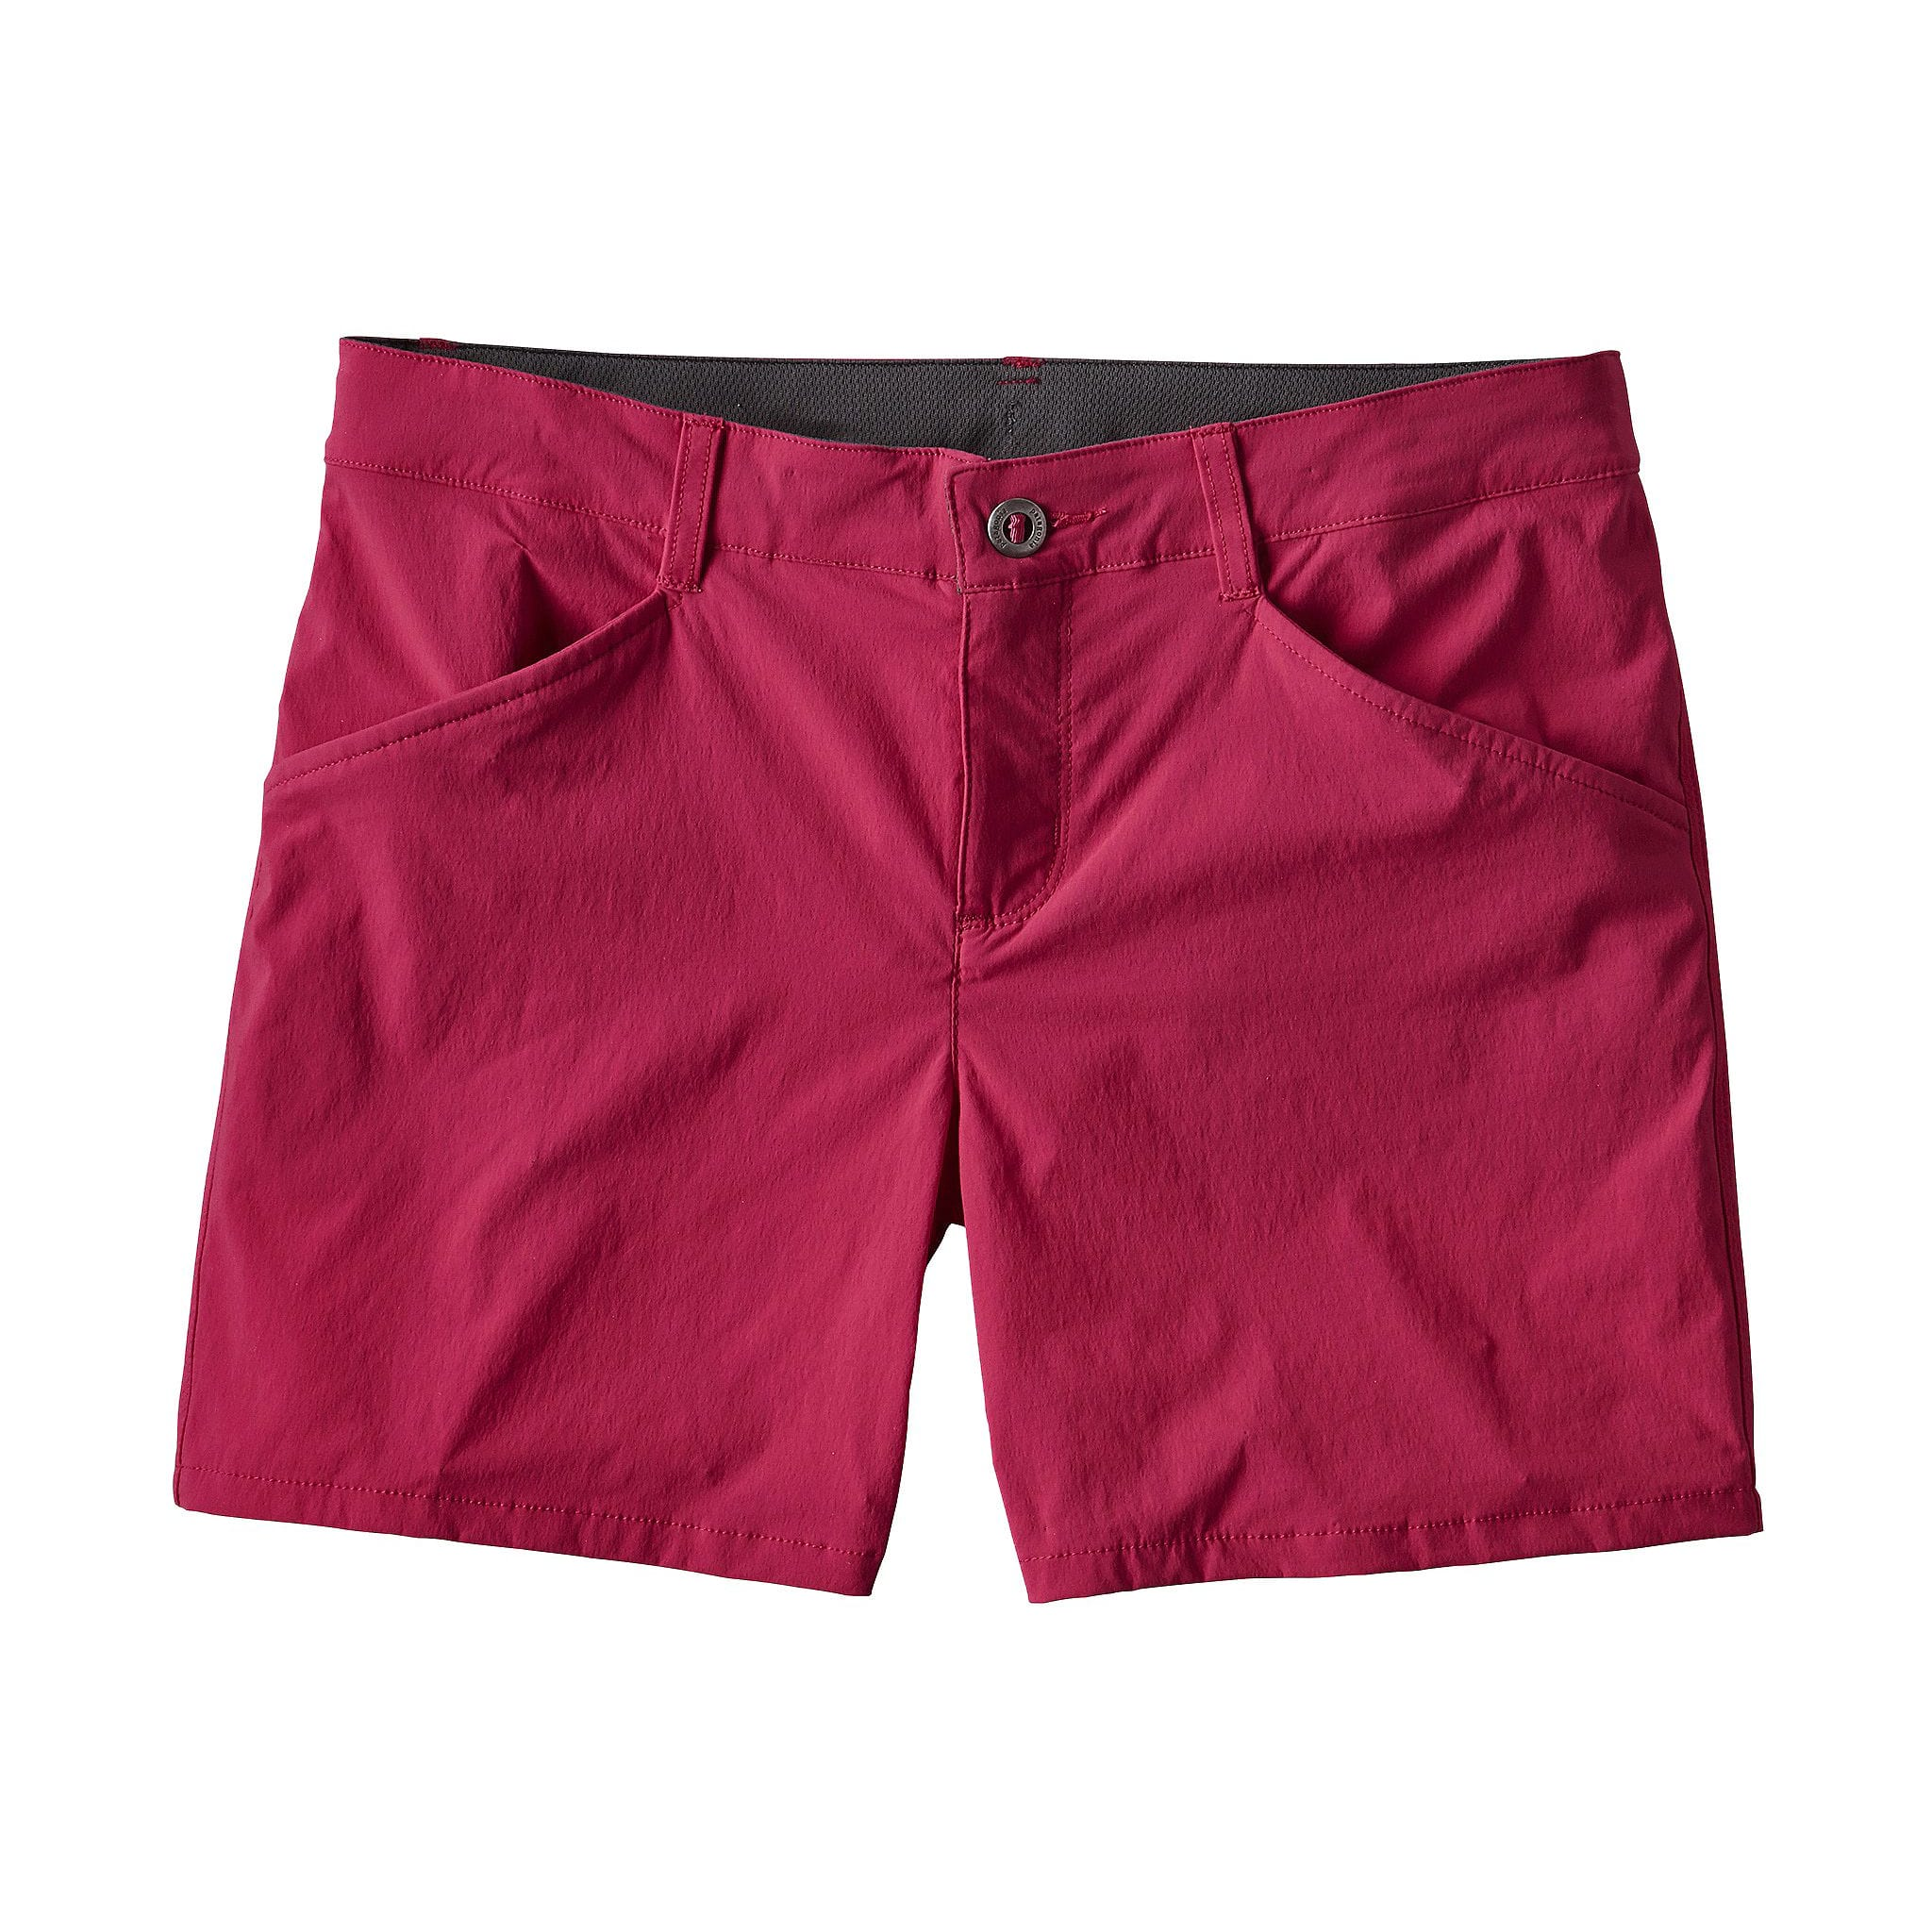 Tynn og lett shorts for reise og fritid